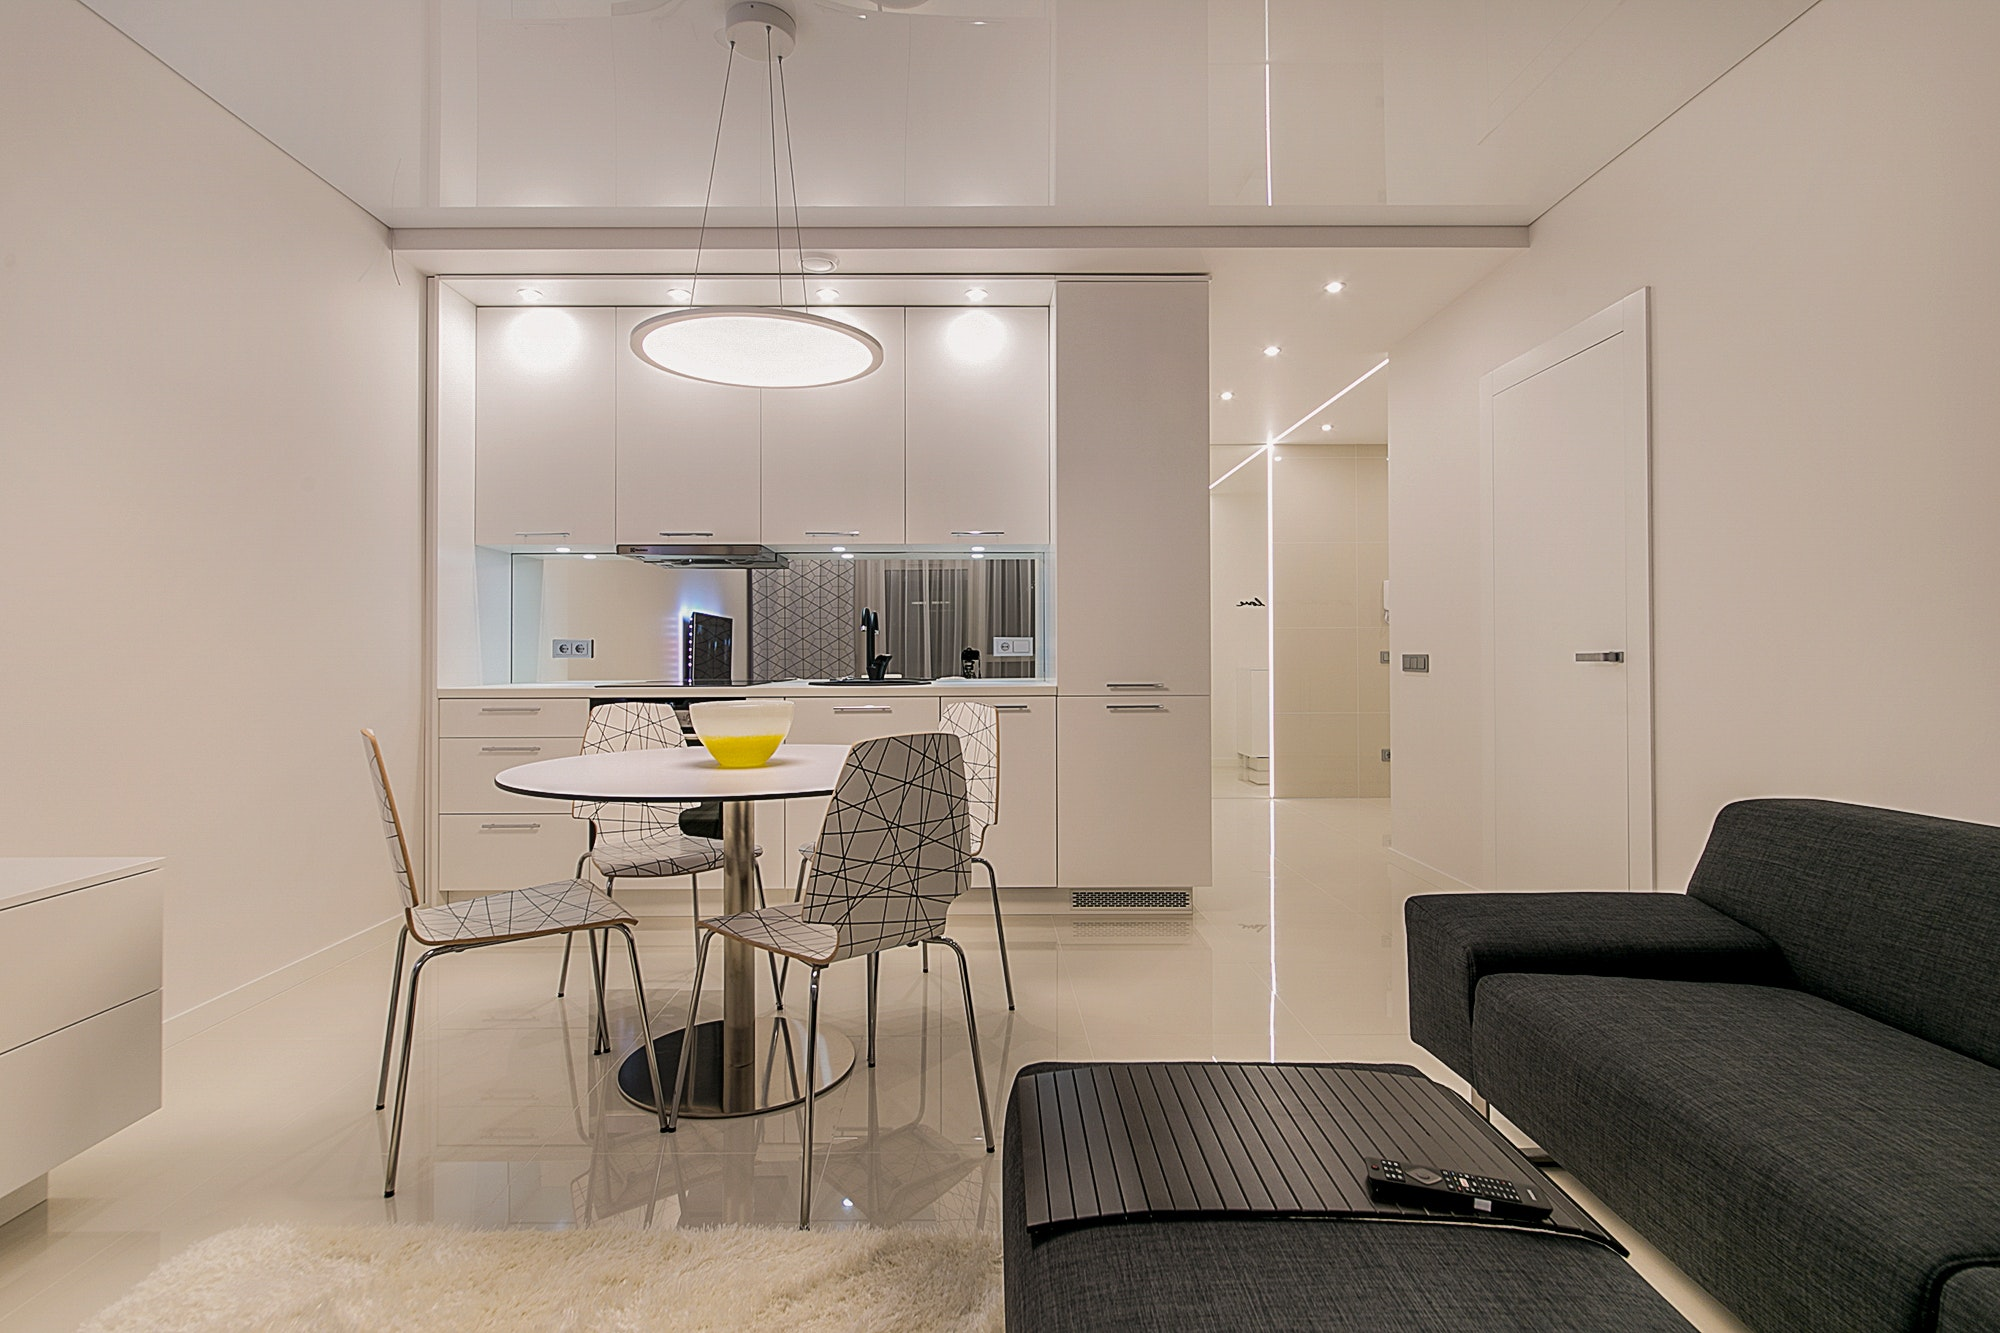 The Benefits Of Adding An In-Law Apartment To A Home